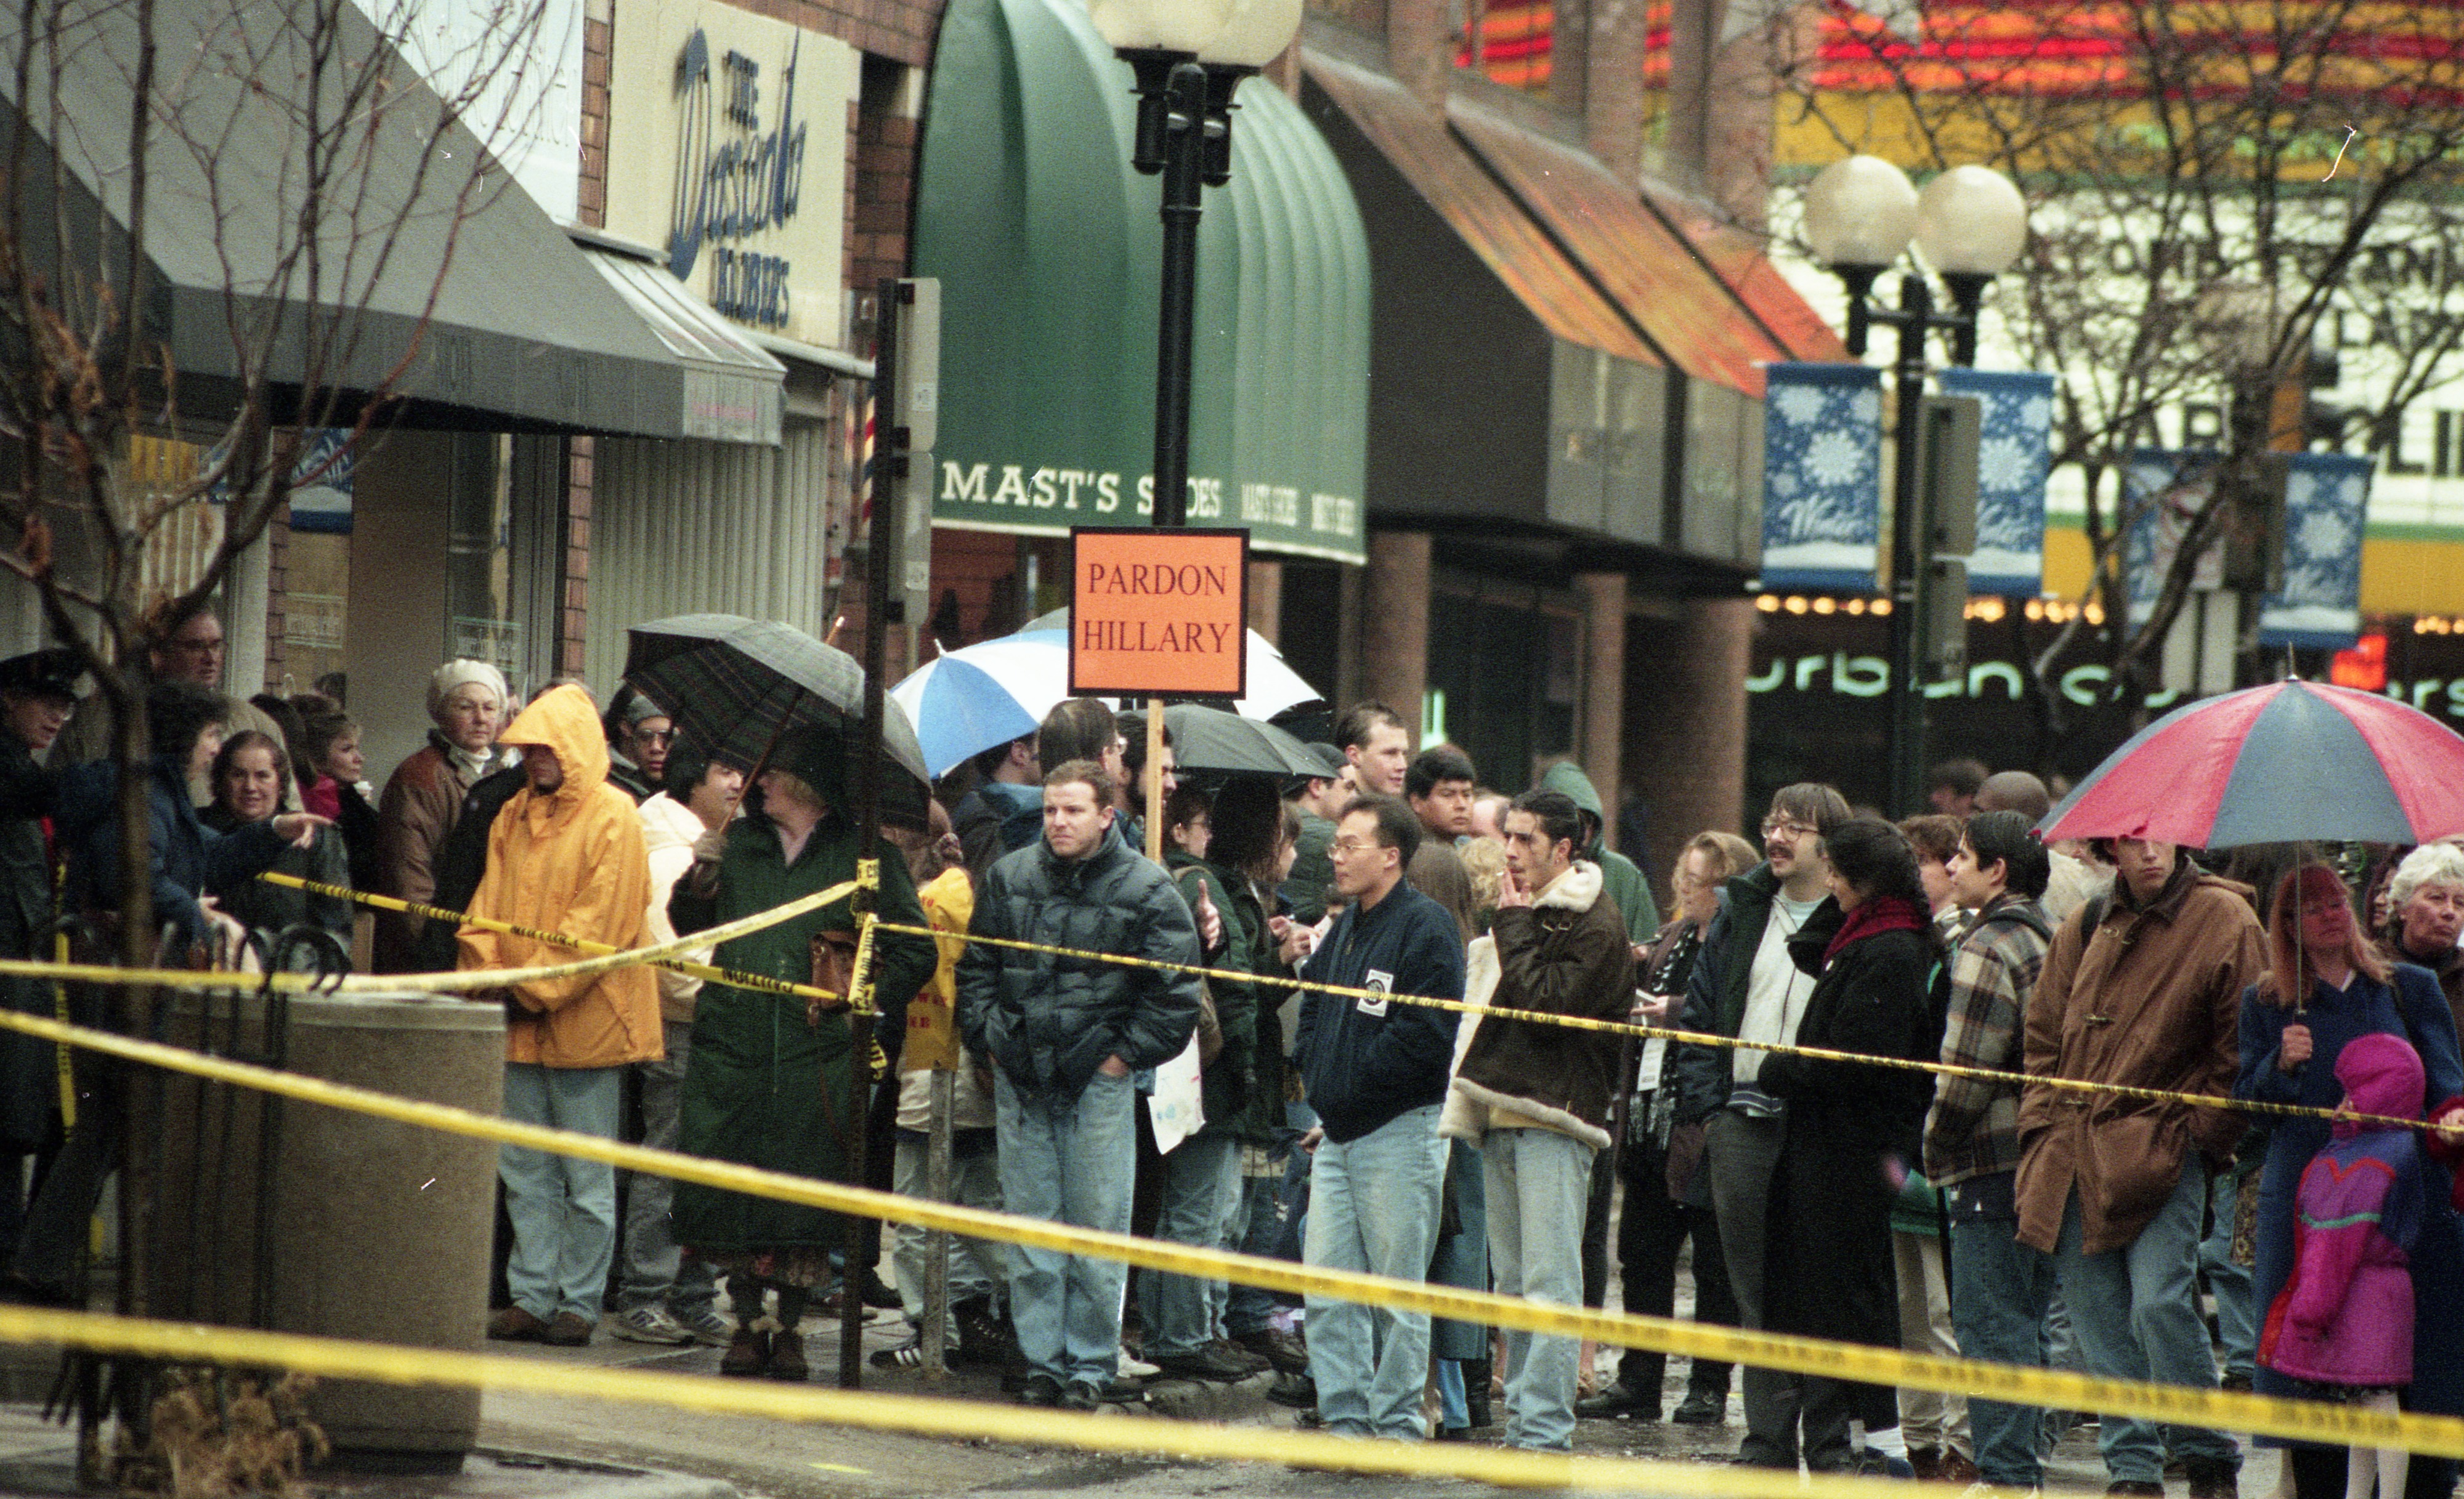 Long Lines Outside Borders For Hillary Clinton Book Signing, January 1996 image